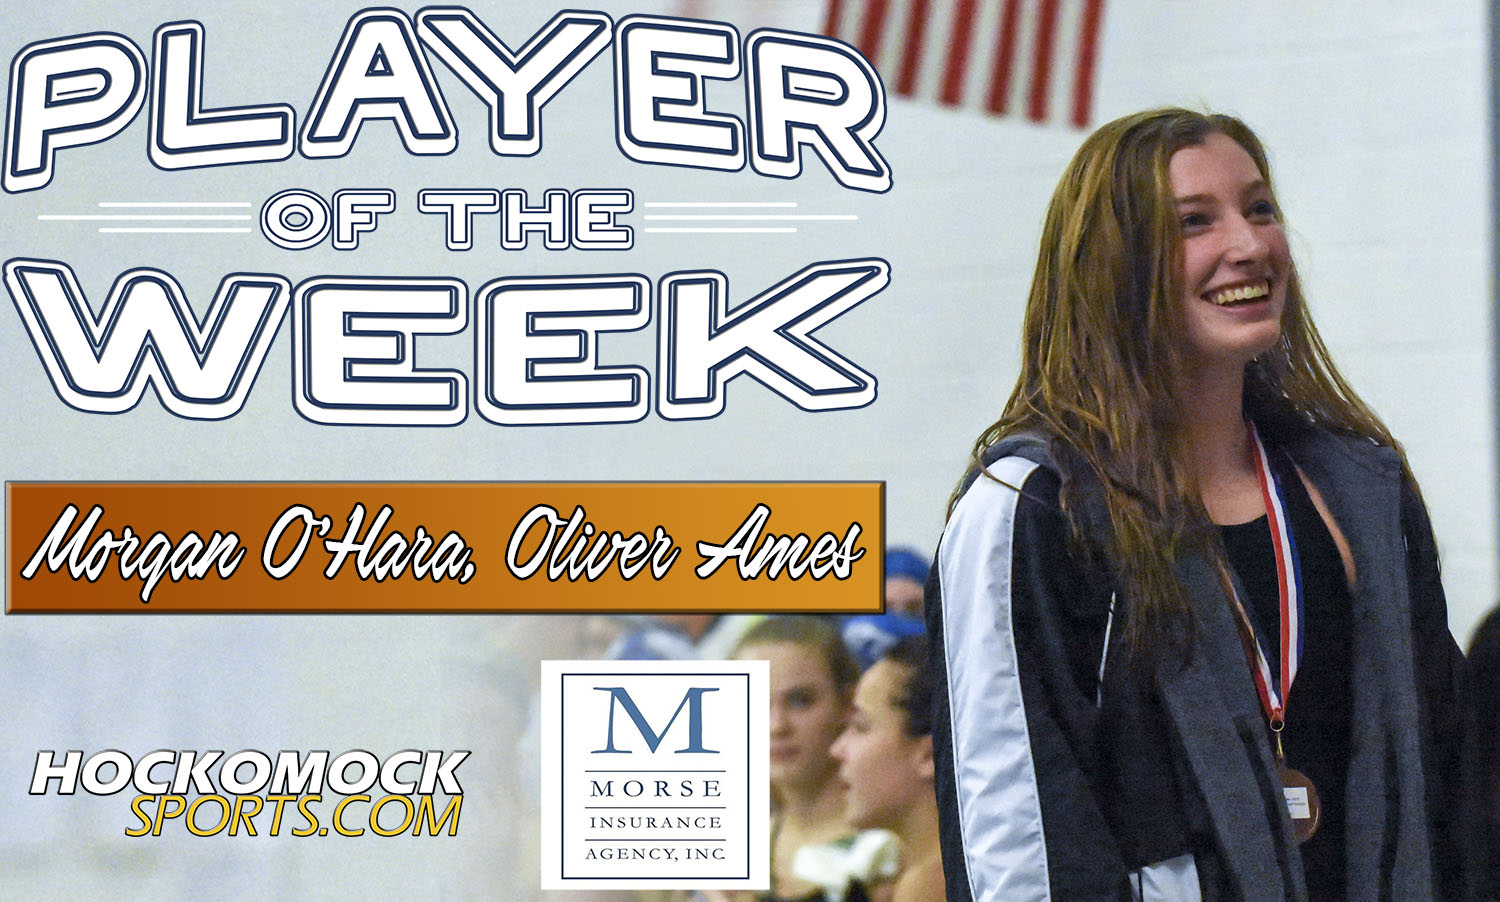 Oliver Ames' Morgan O'Hara